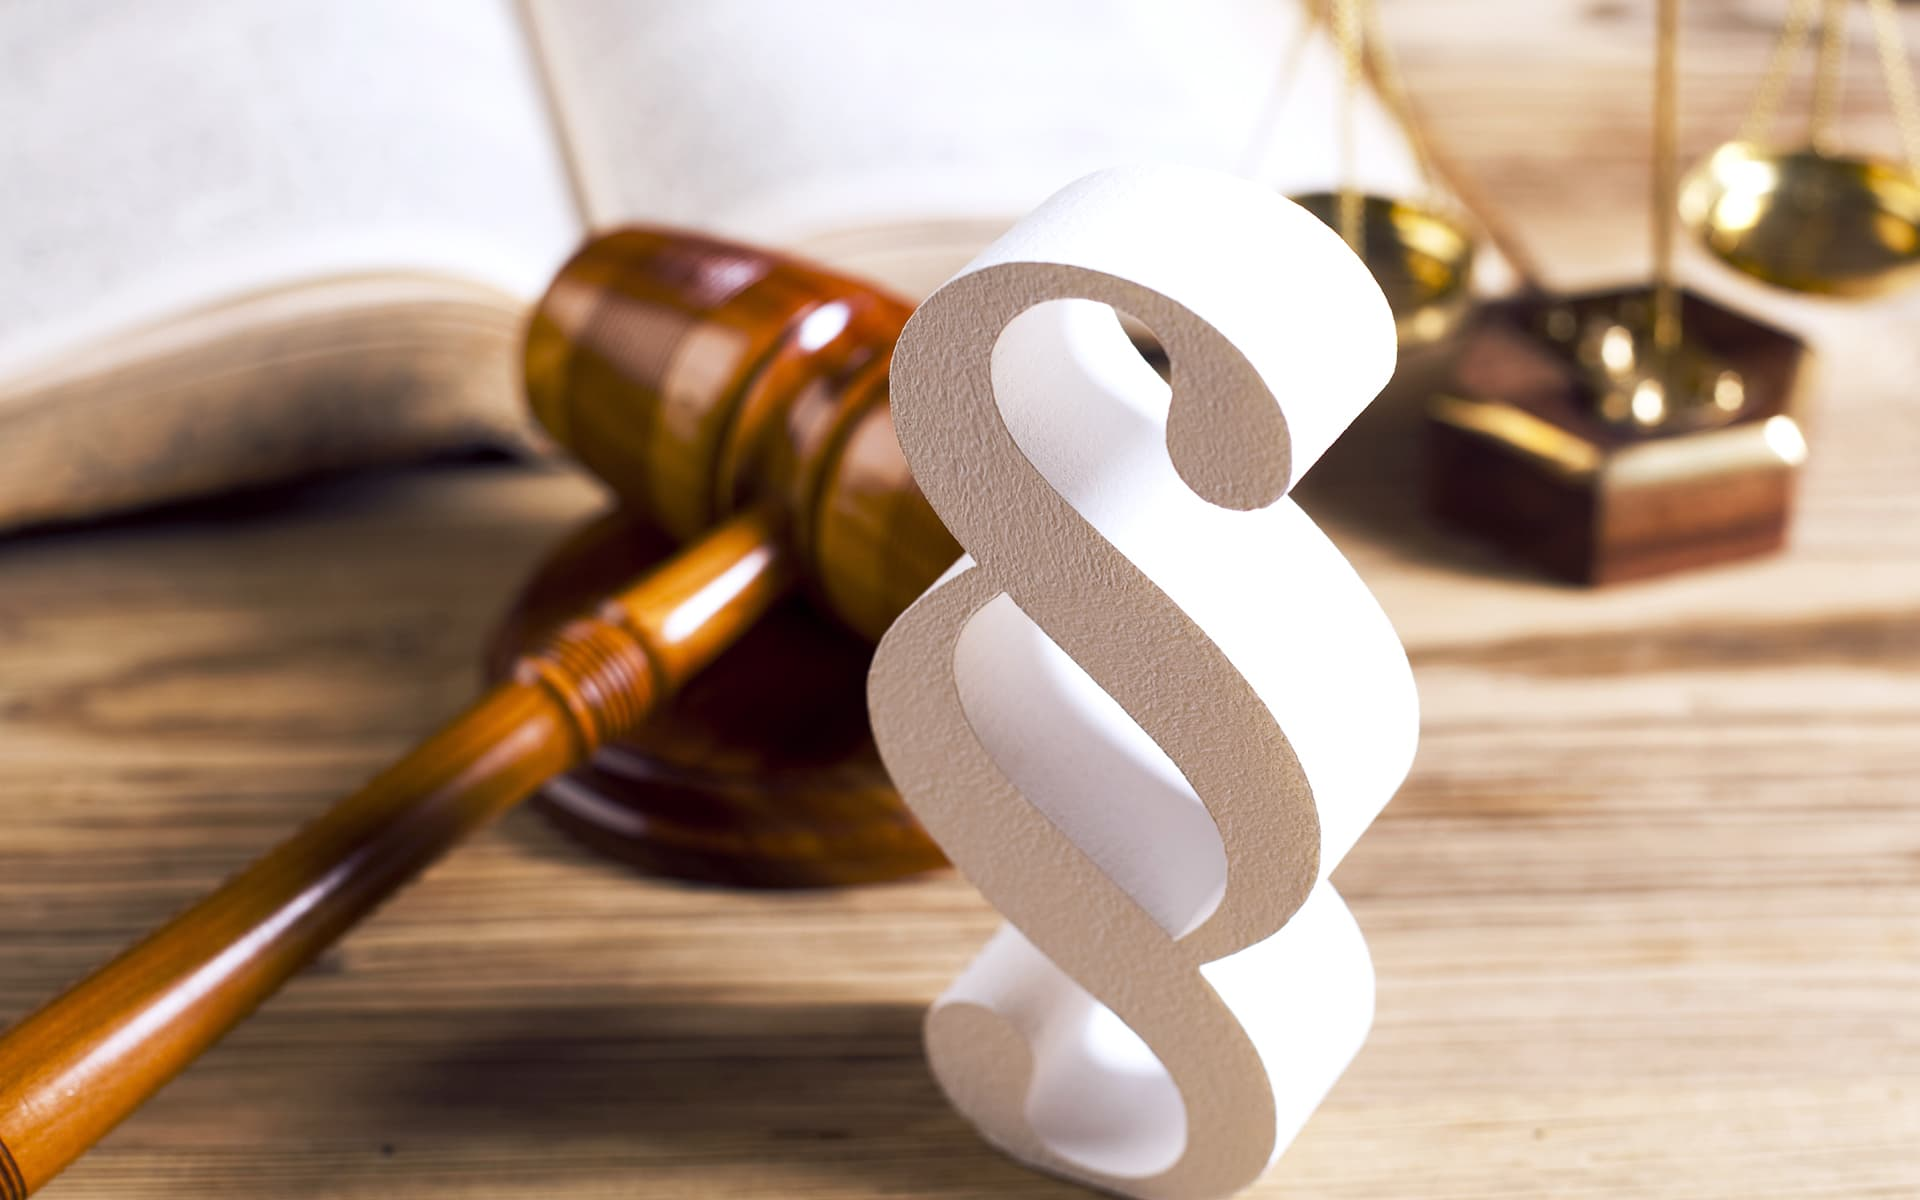 The picture shows a paragraph icon of a law book